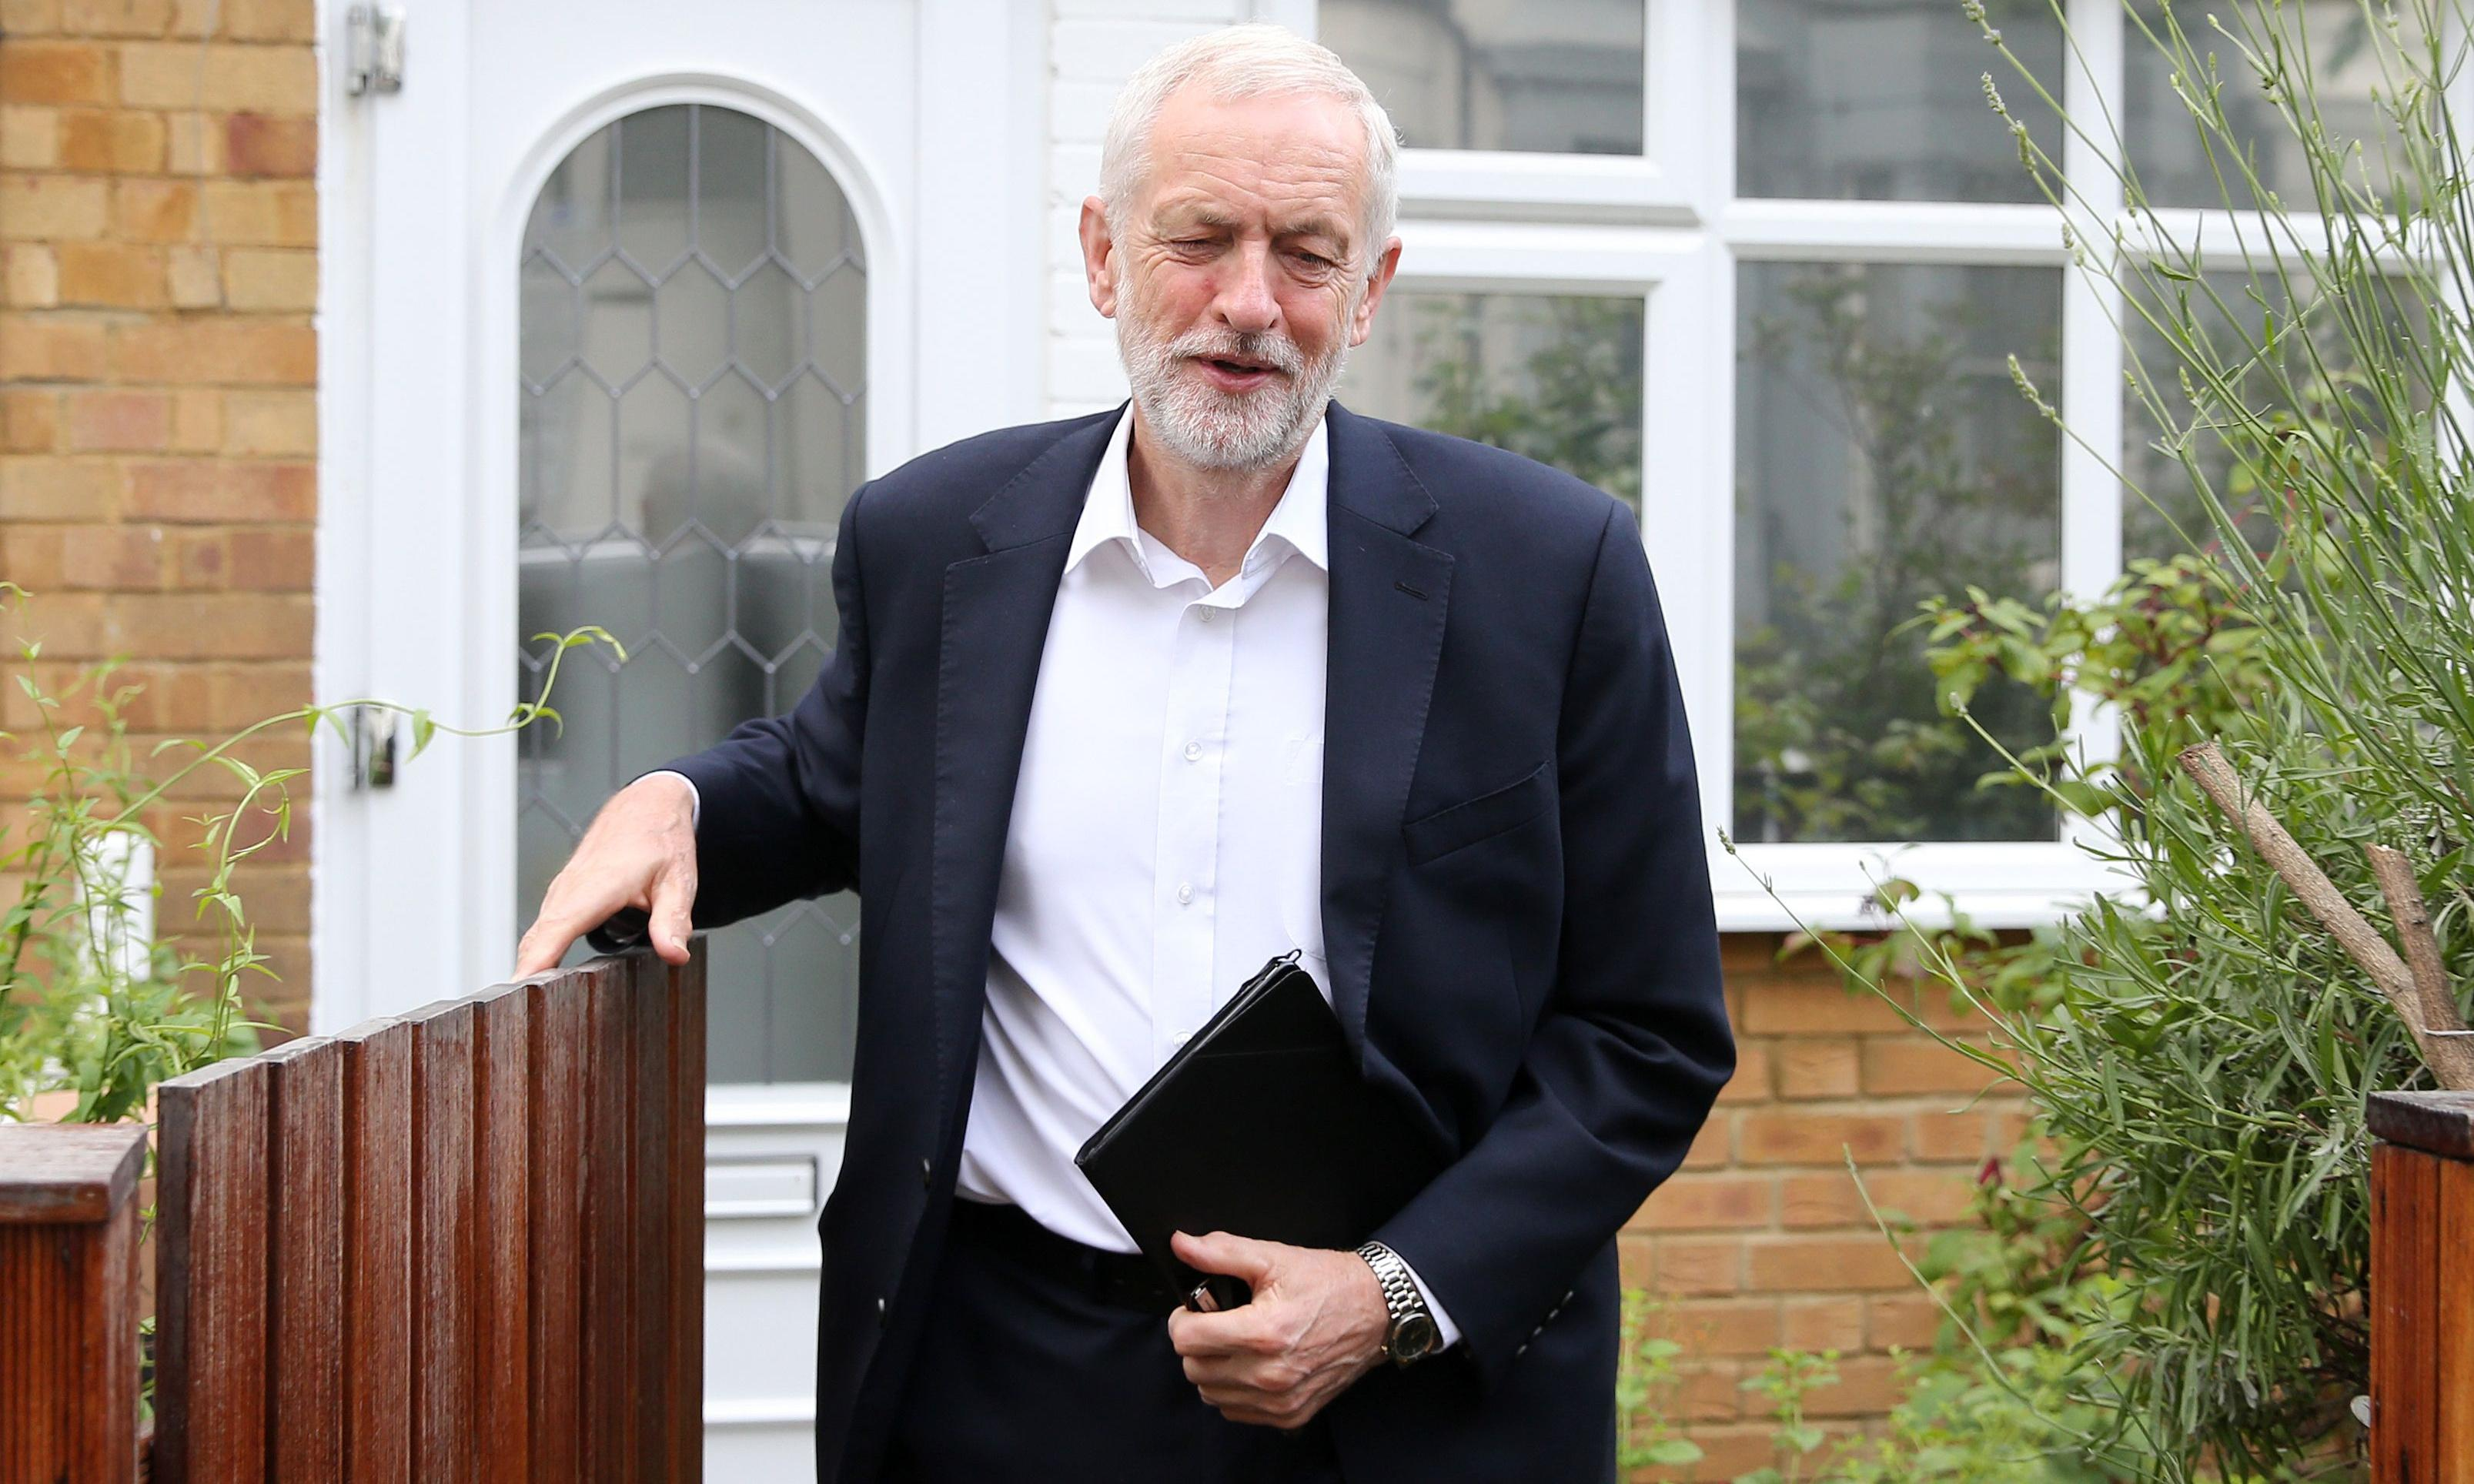 Grassroots and shadow cabinet add to pressure on Corbyn over Brexit